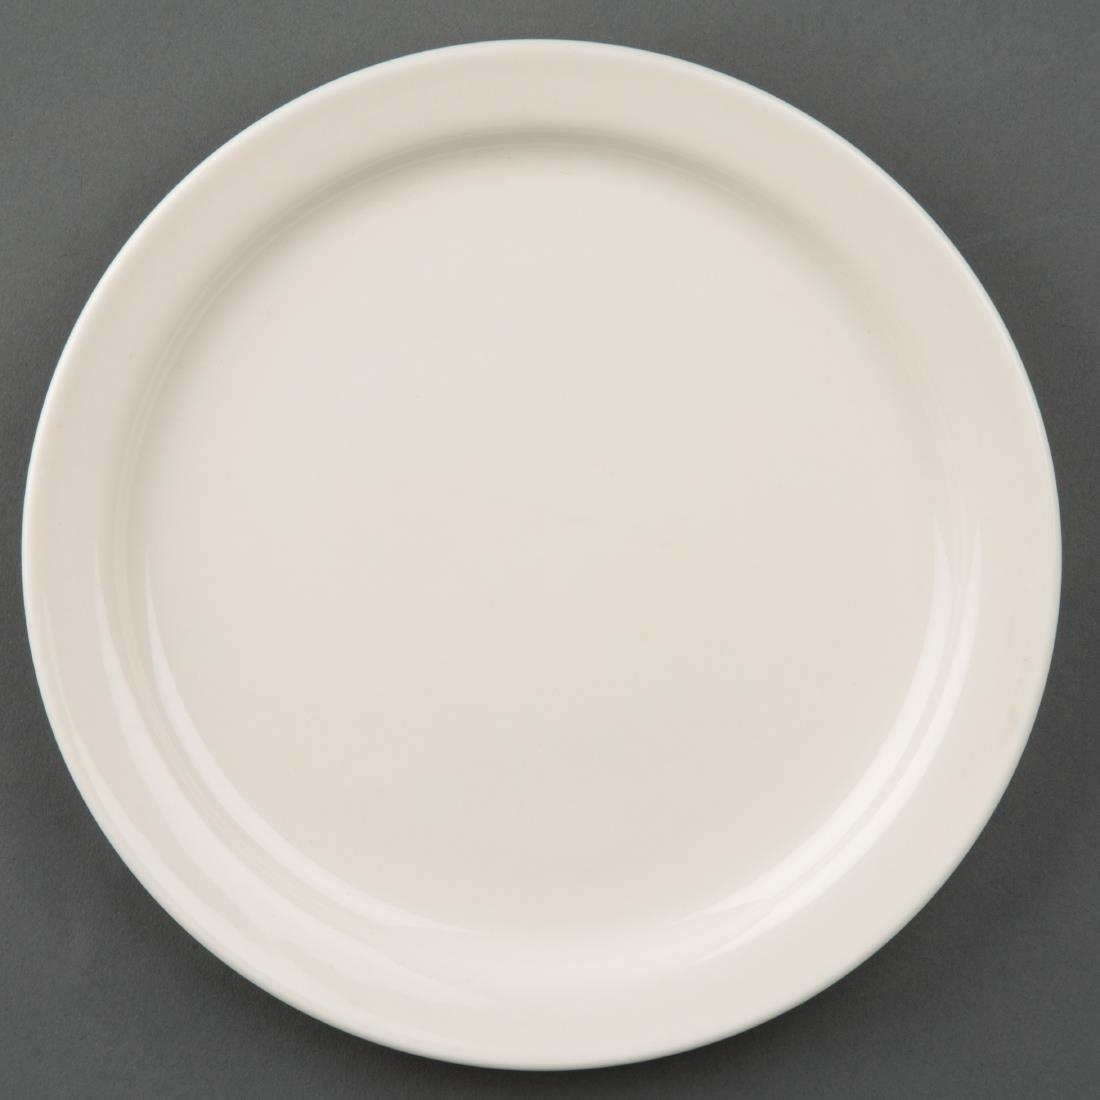 U841 - Olympia Ivory Narrow Rimmed Plates 175mm - Case 12 - U841